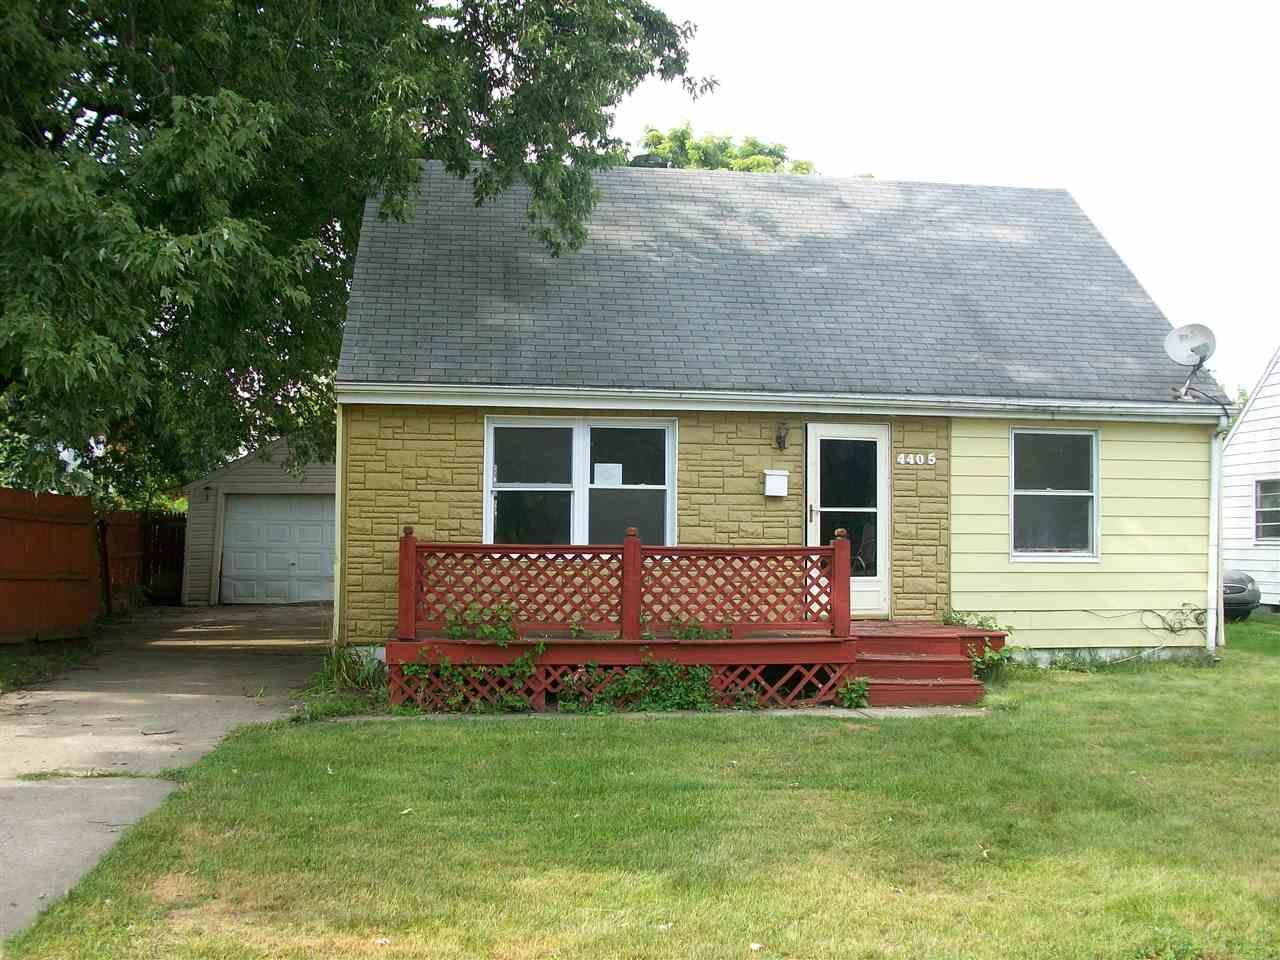 4405 Meadow, South Bend, IN 46619